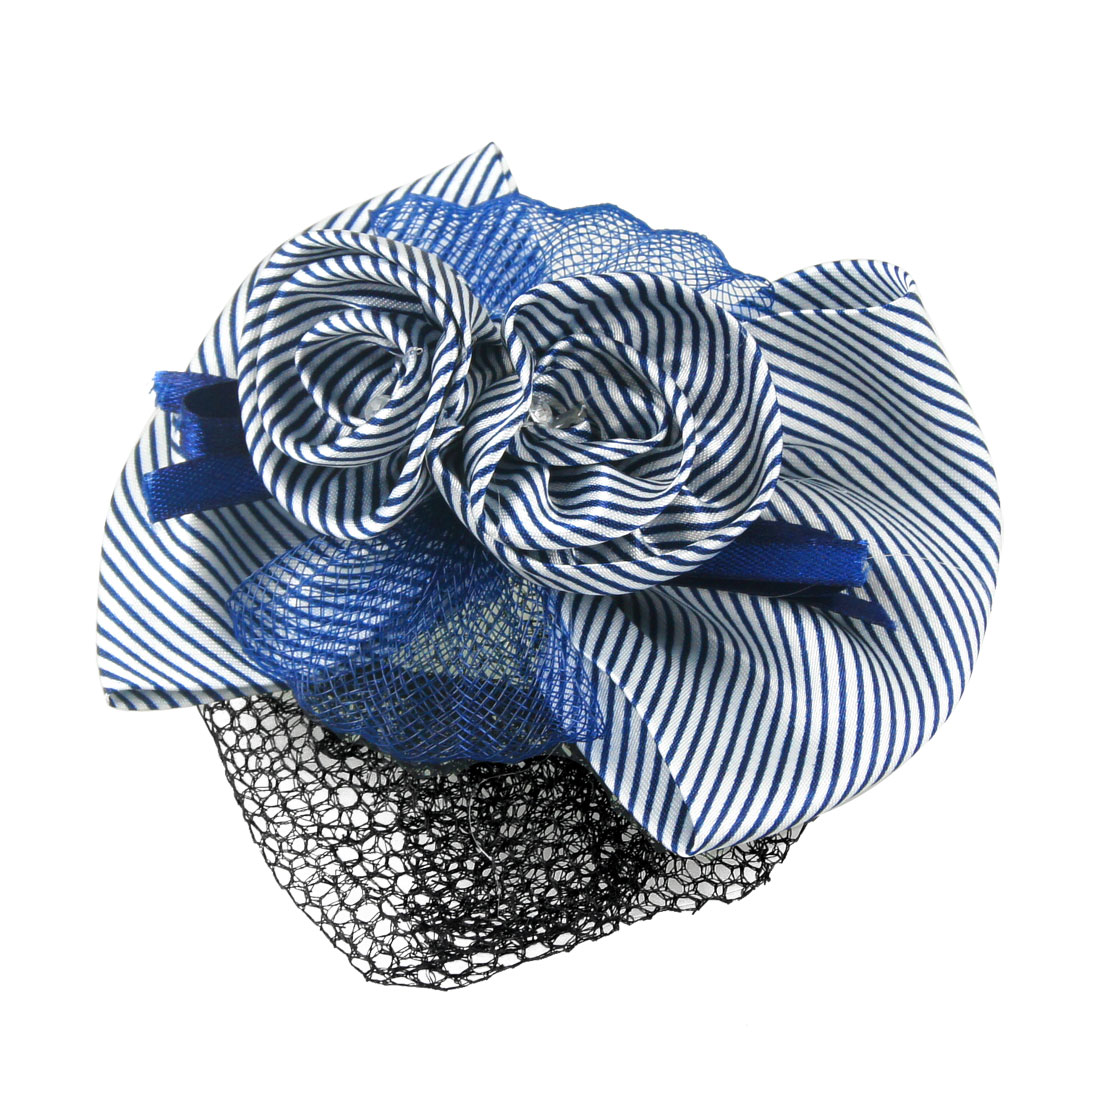 Lady Blue Headdress Two Layers Bowtie Accent Hairclip Hairnet